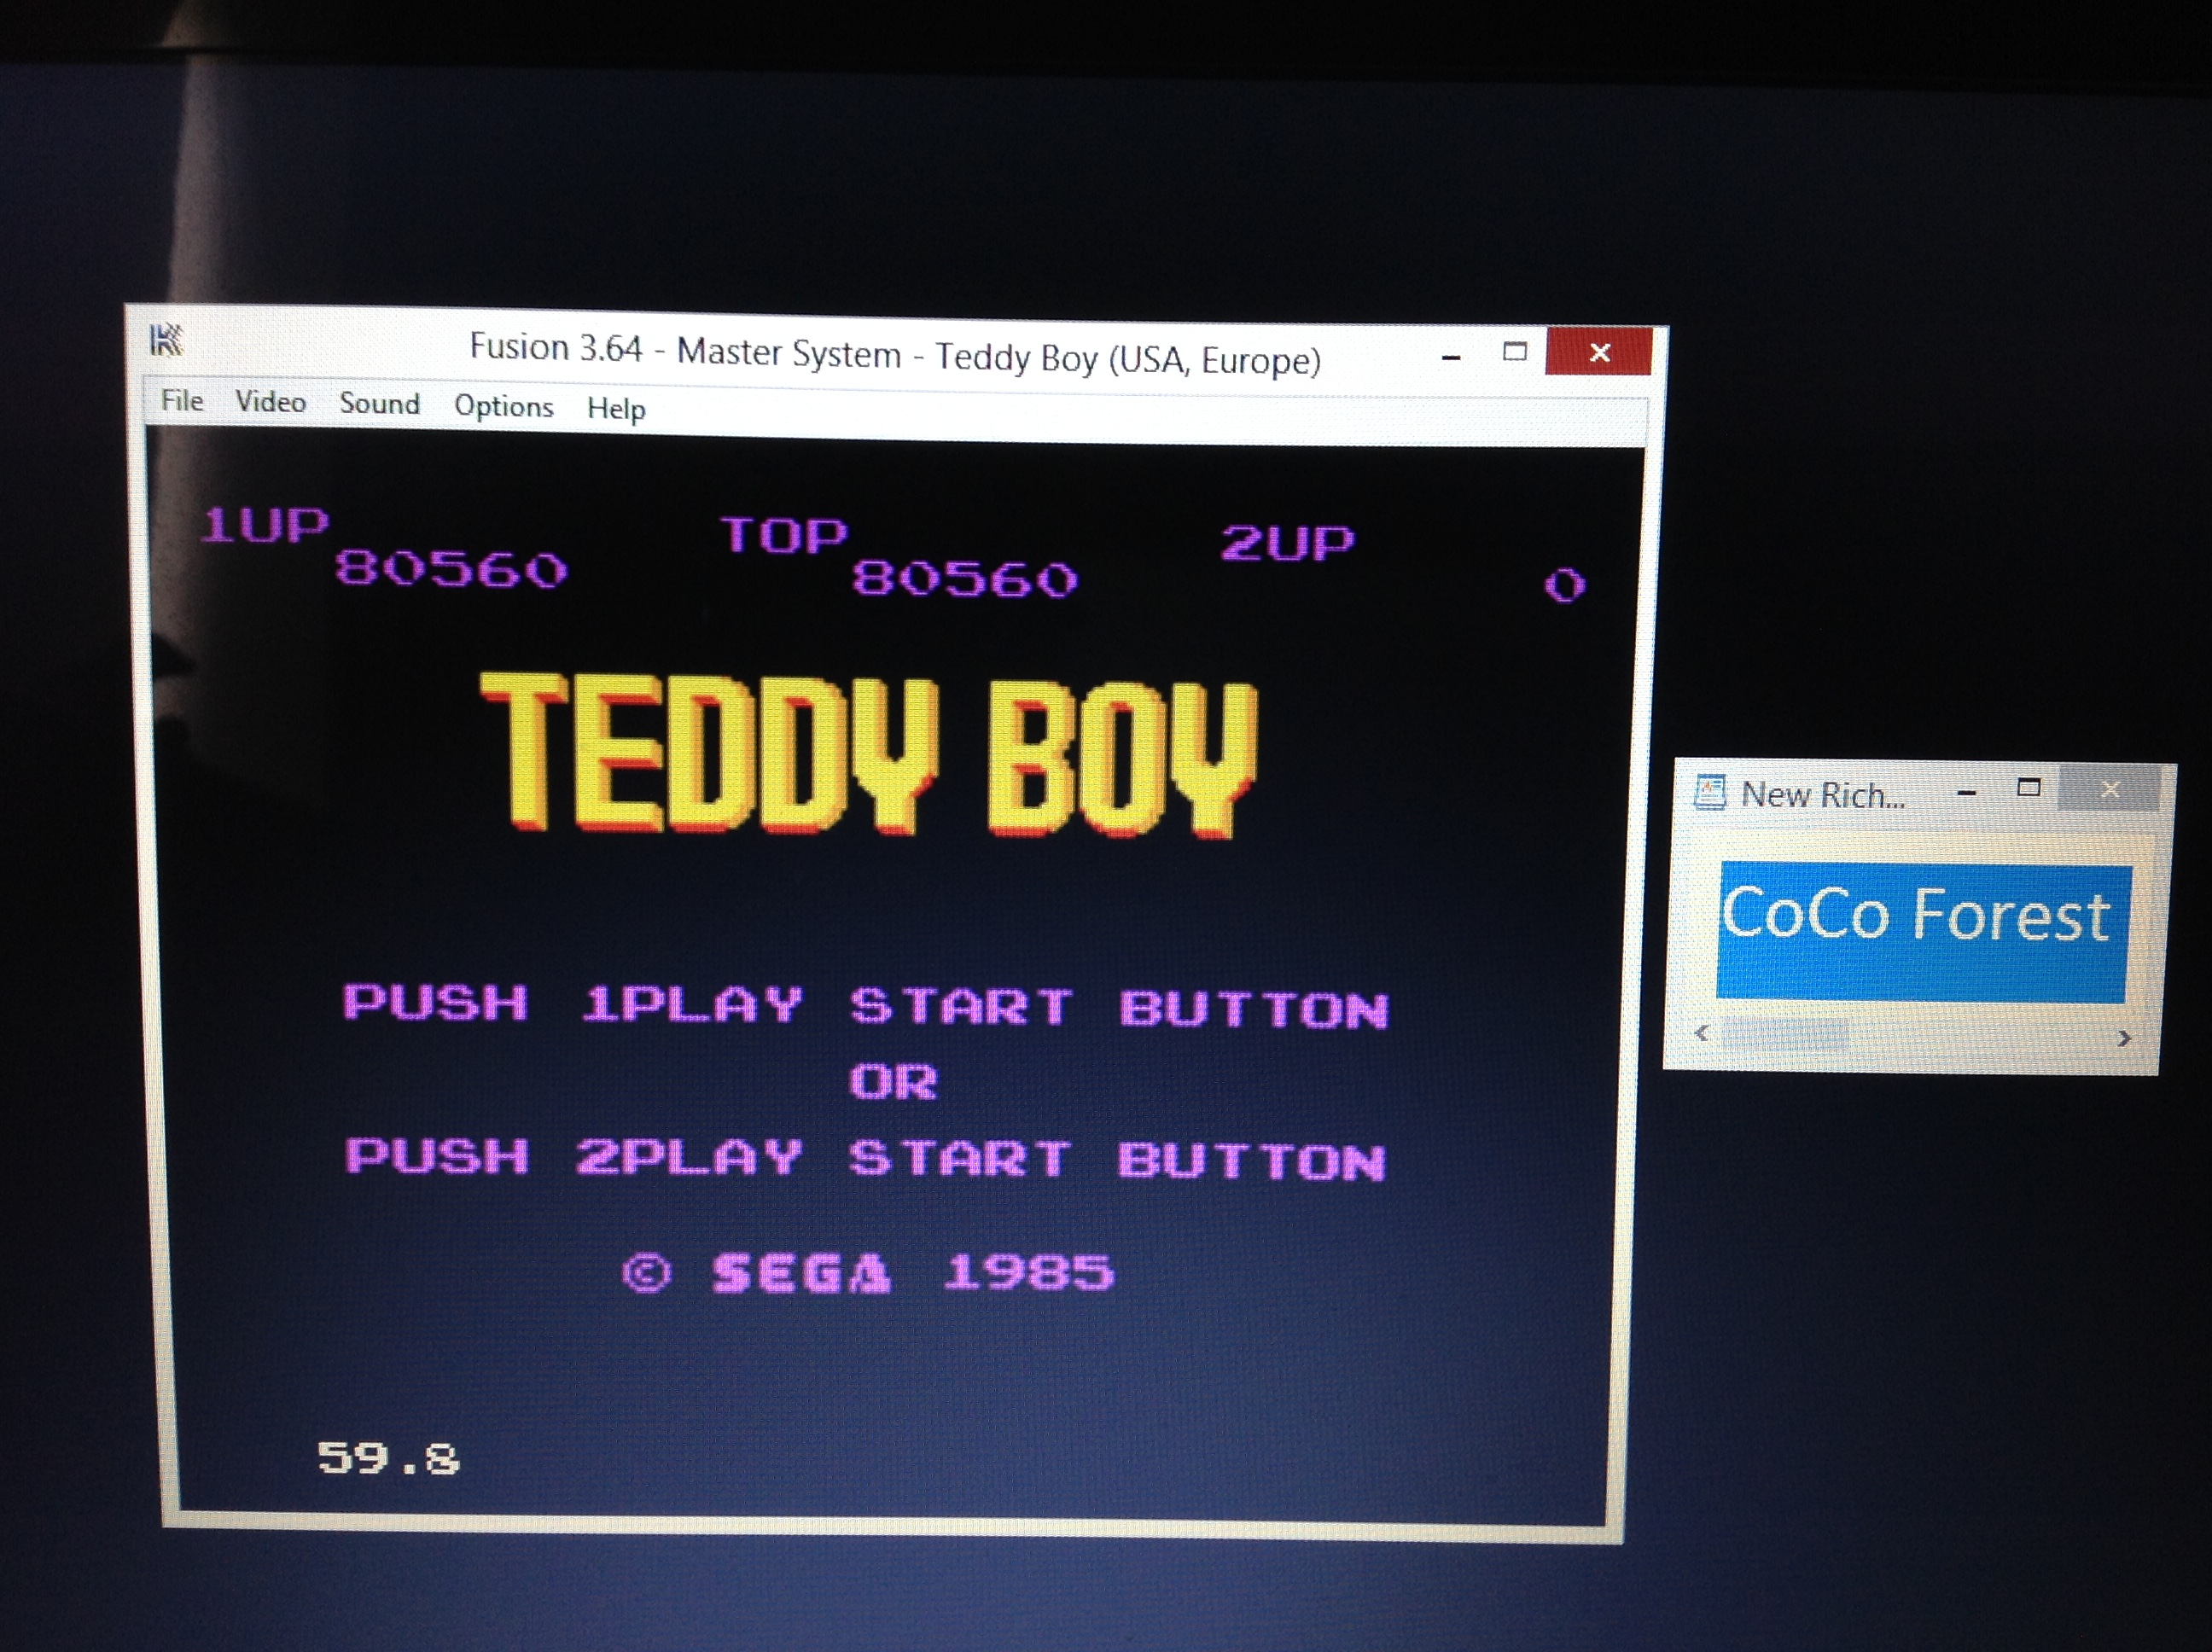 Teddy Boy 80,560 points